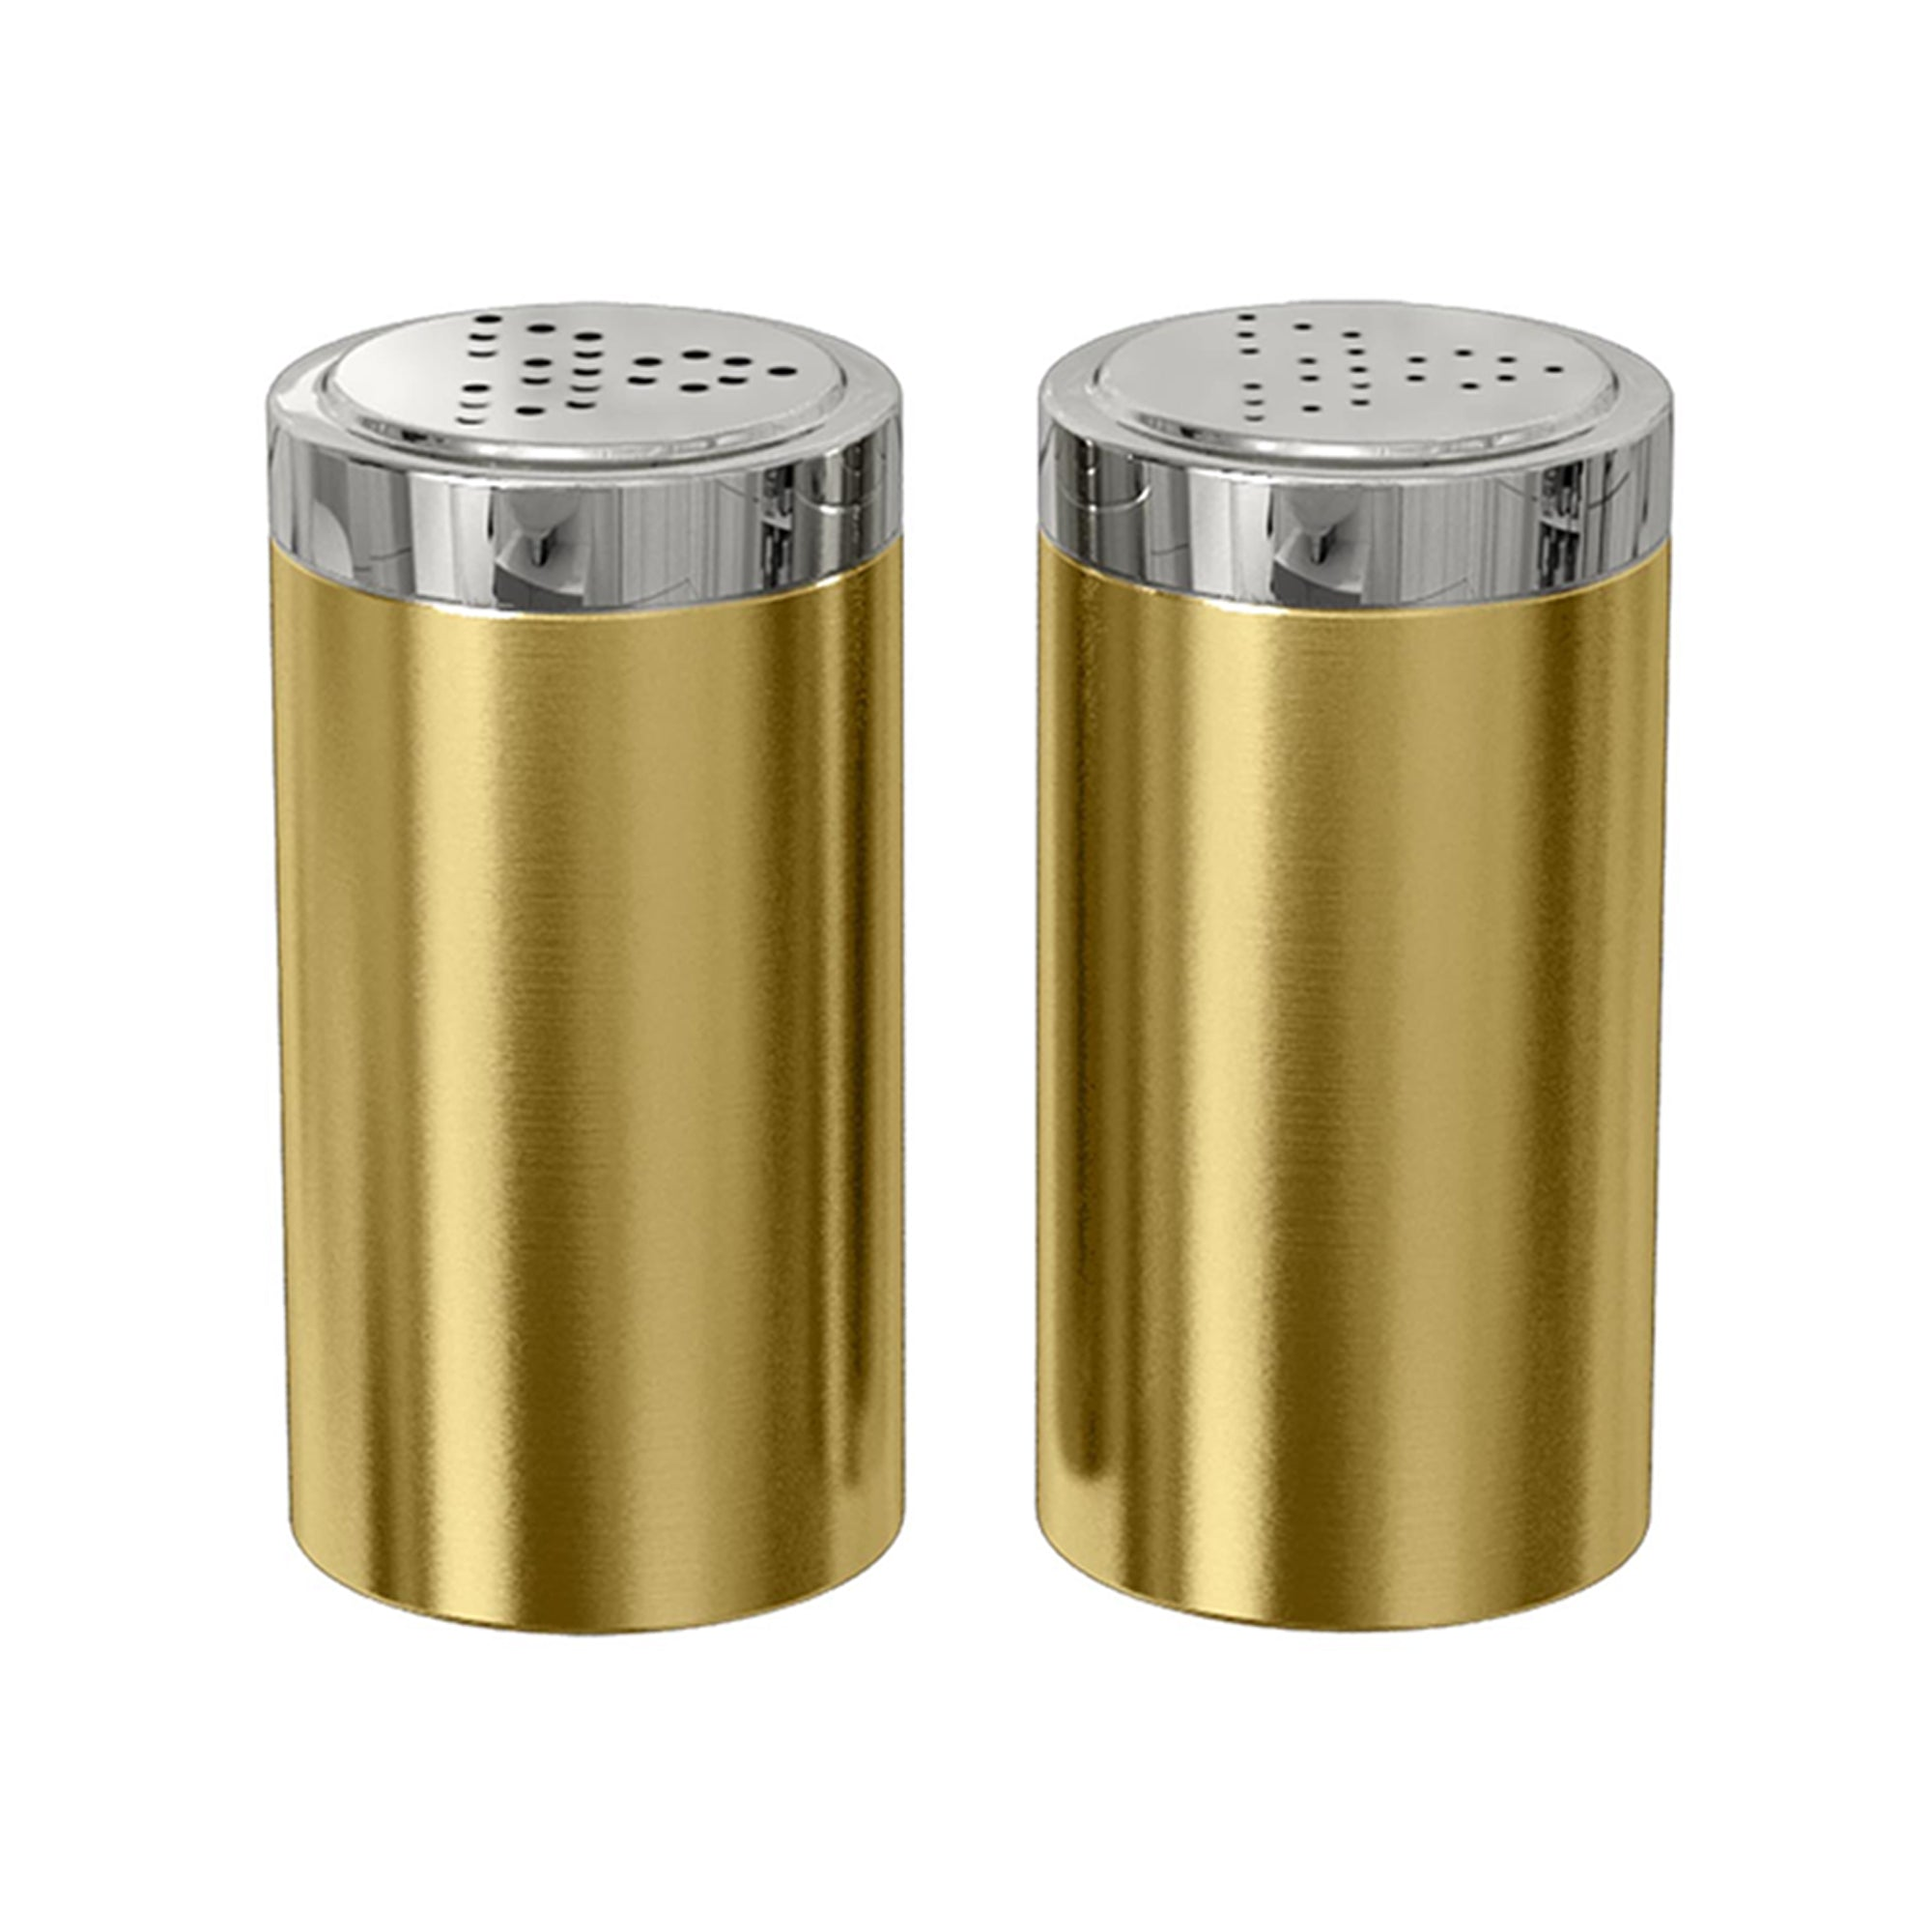 JUMBO SALT & PEPPER SHAKER - Nusteel